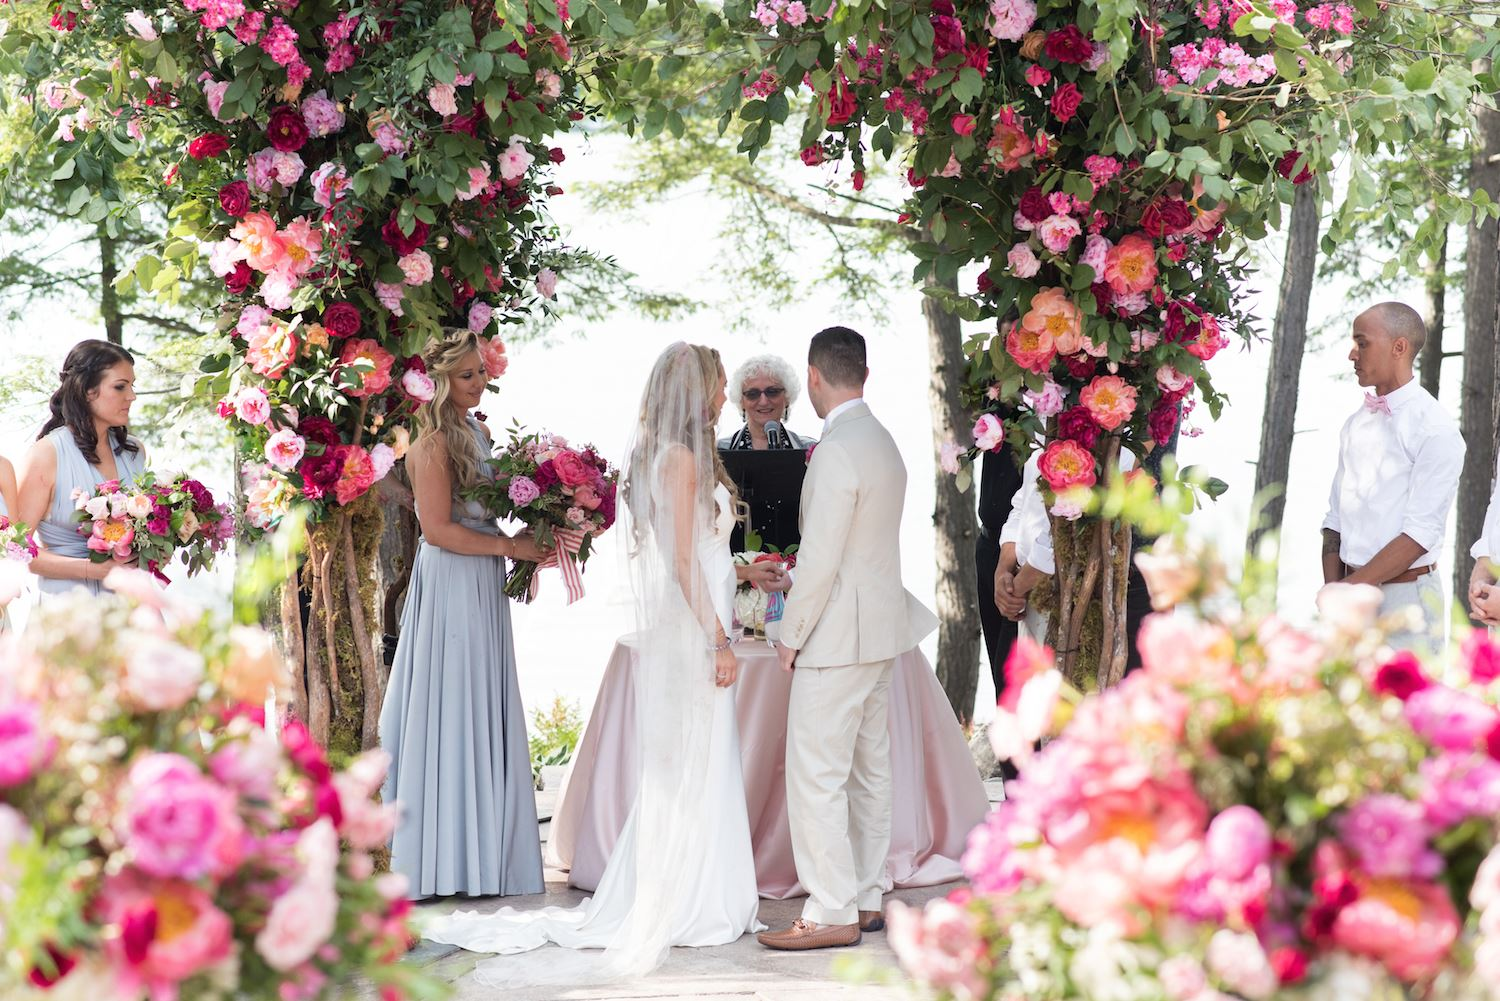 luxury floral wedding chuppah rachel a clingen